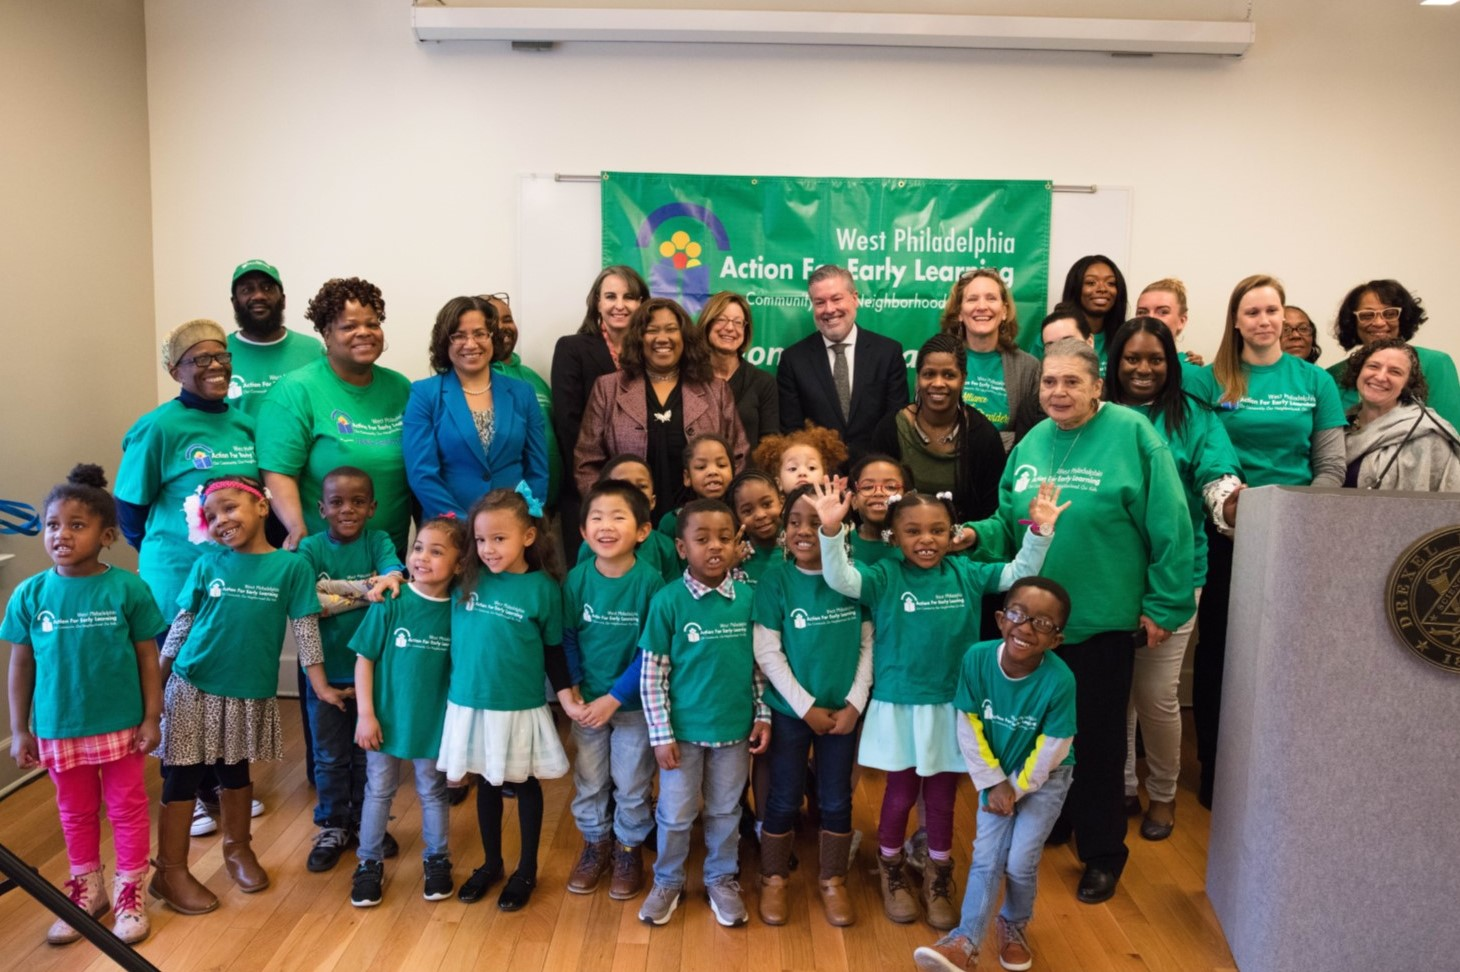 Vanguard Awards $1.63 Million Grant to Improve Quality of Early Childhood Education